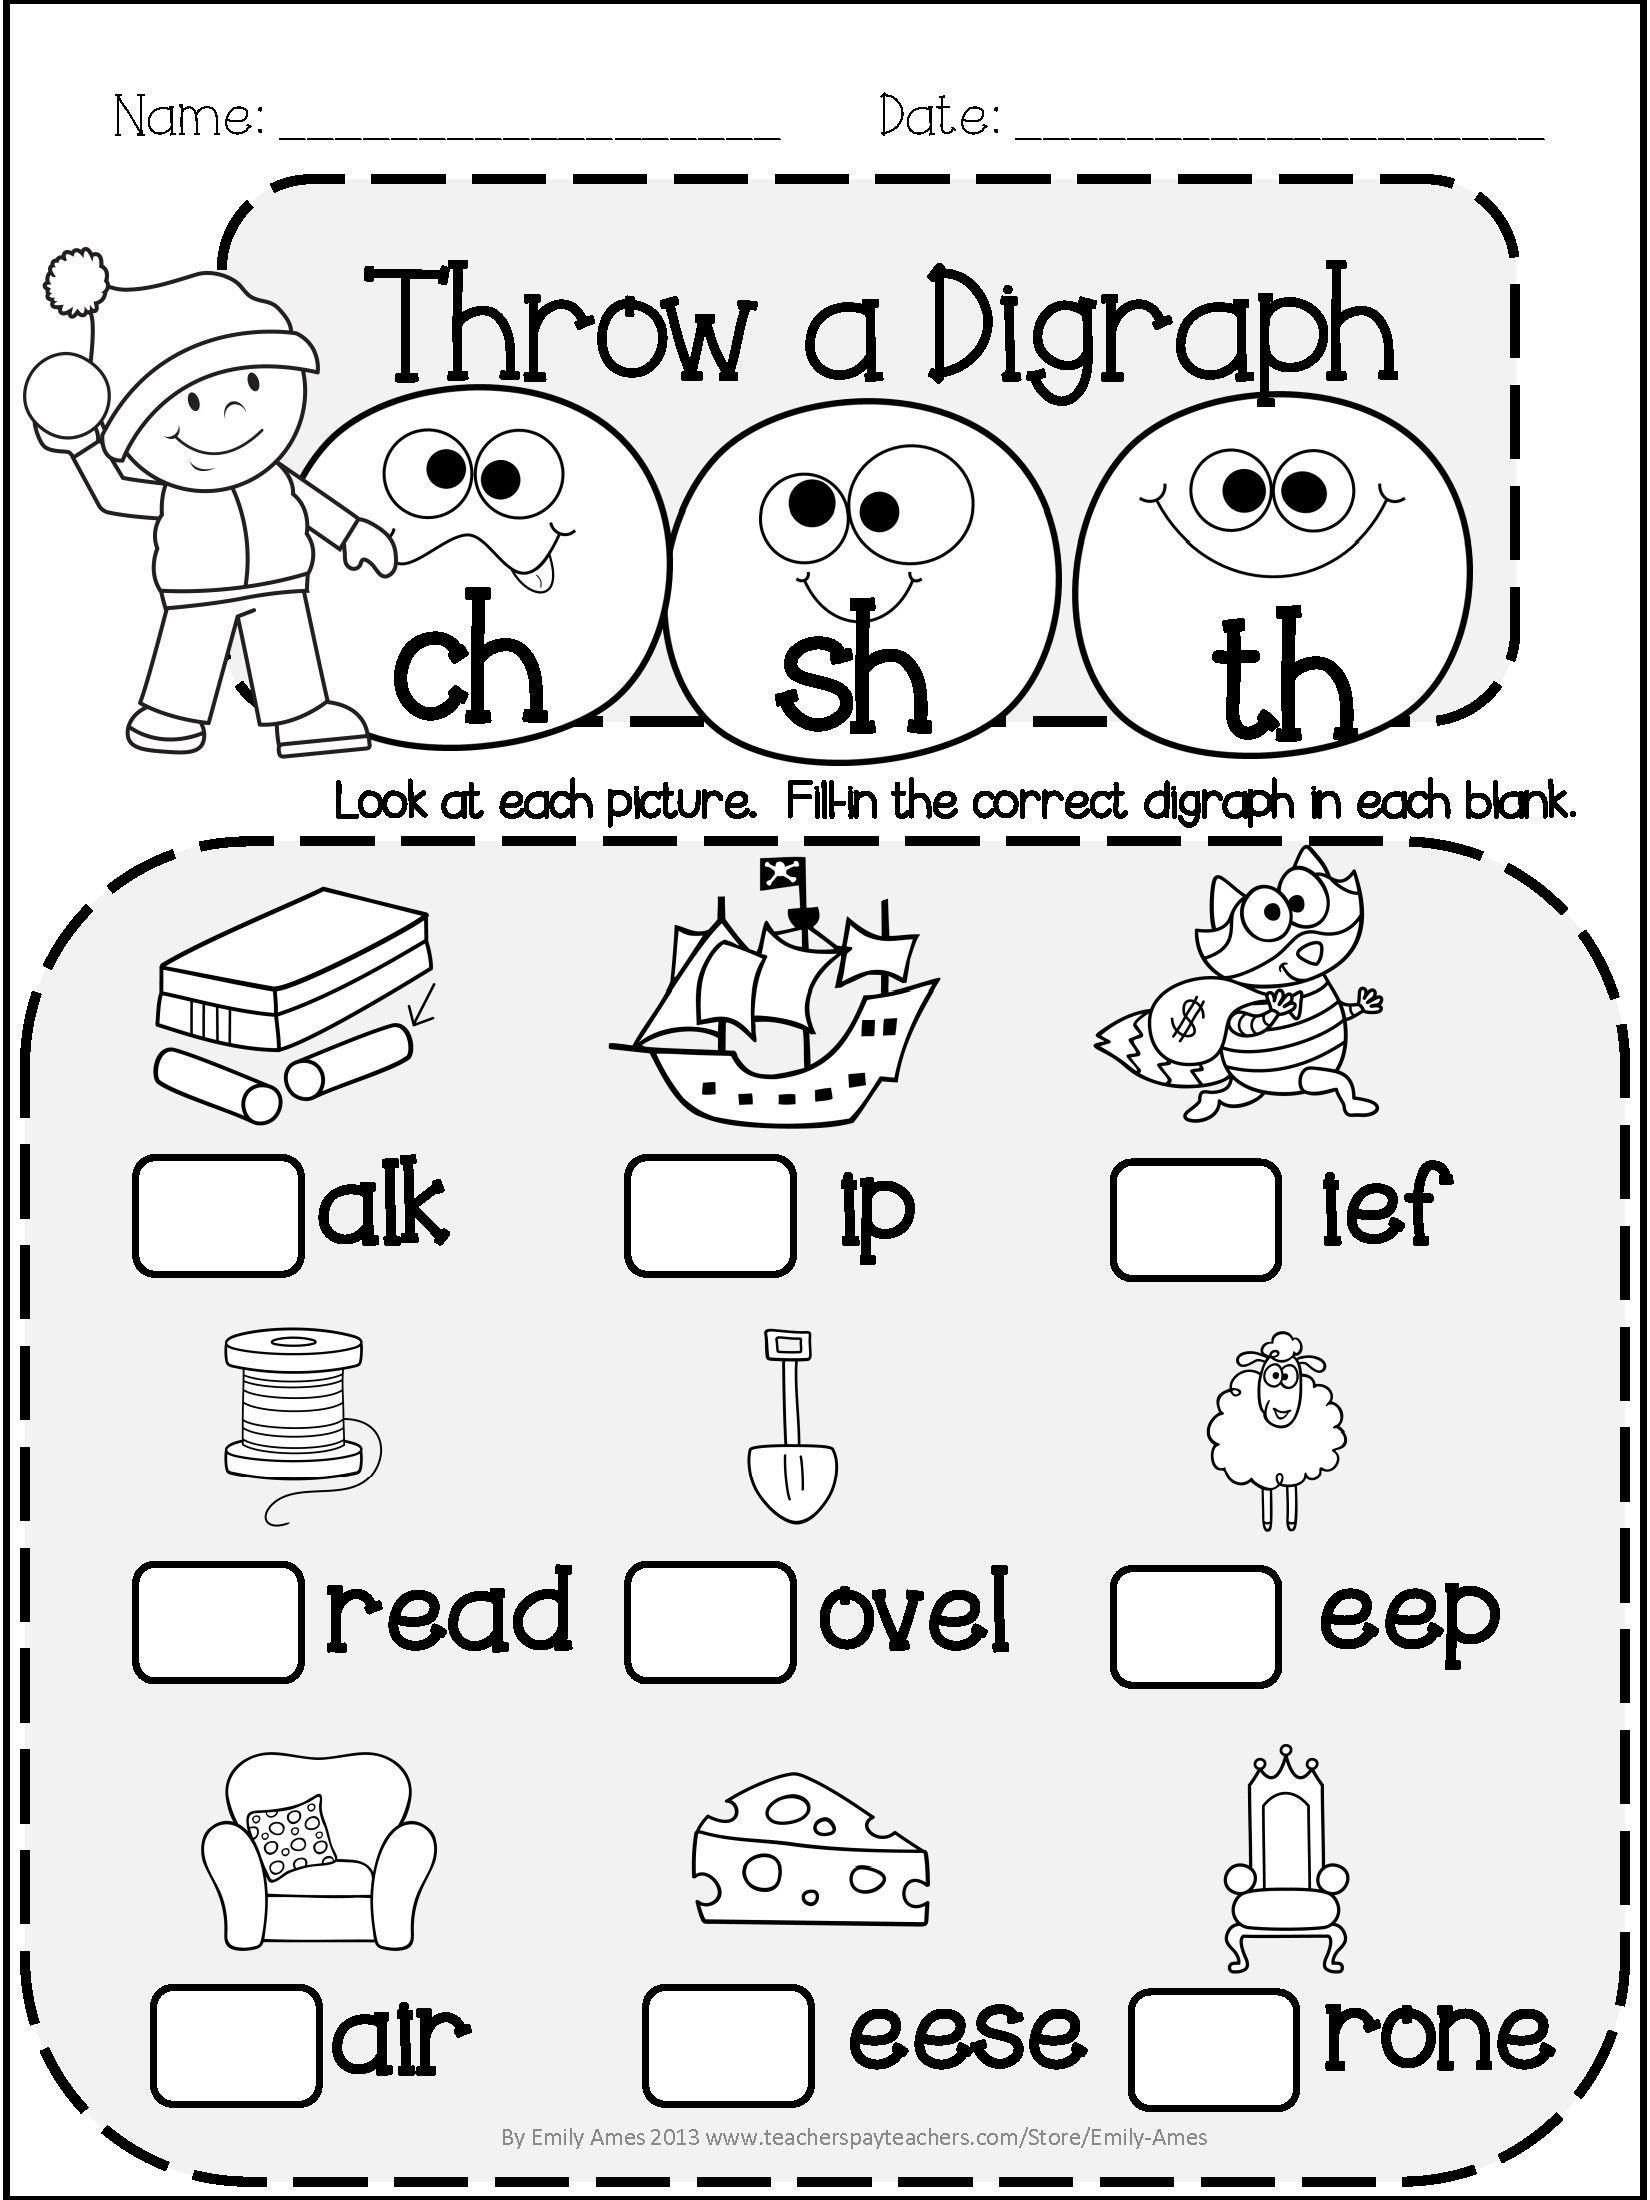 Ck Worksheets for 1st Grade Winter Literacy Fun Short & Long Vowels Digraphs and